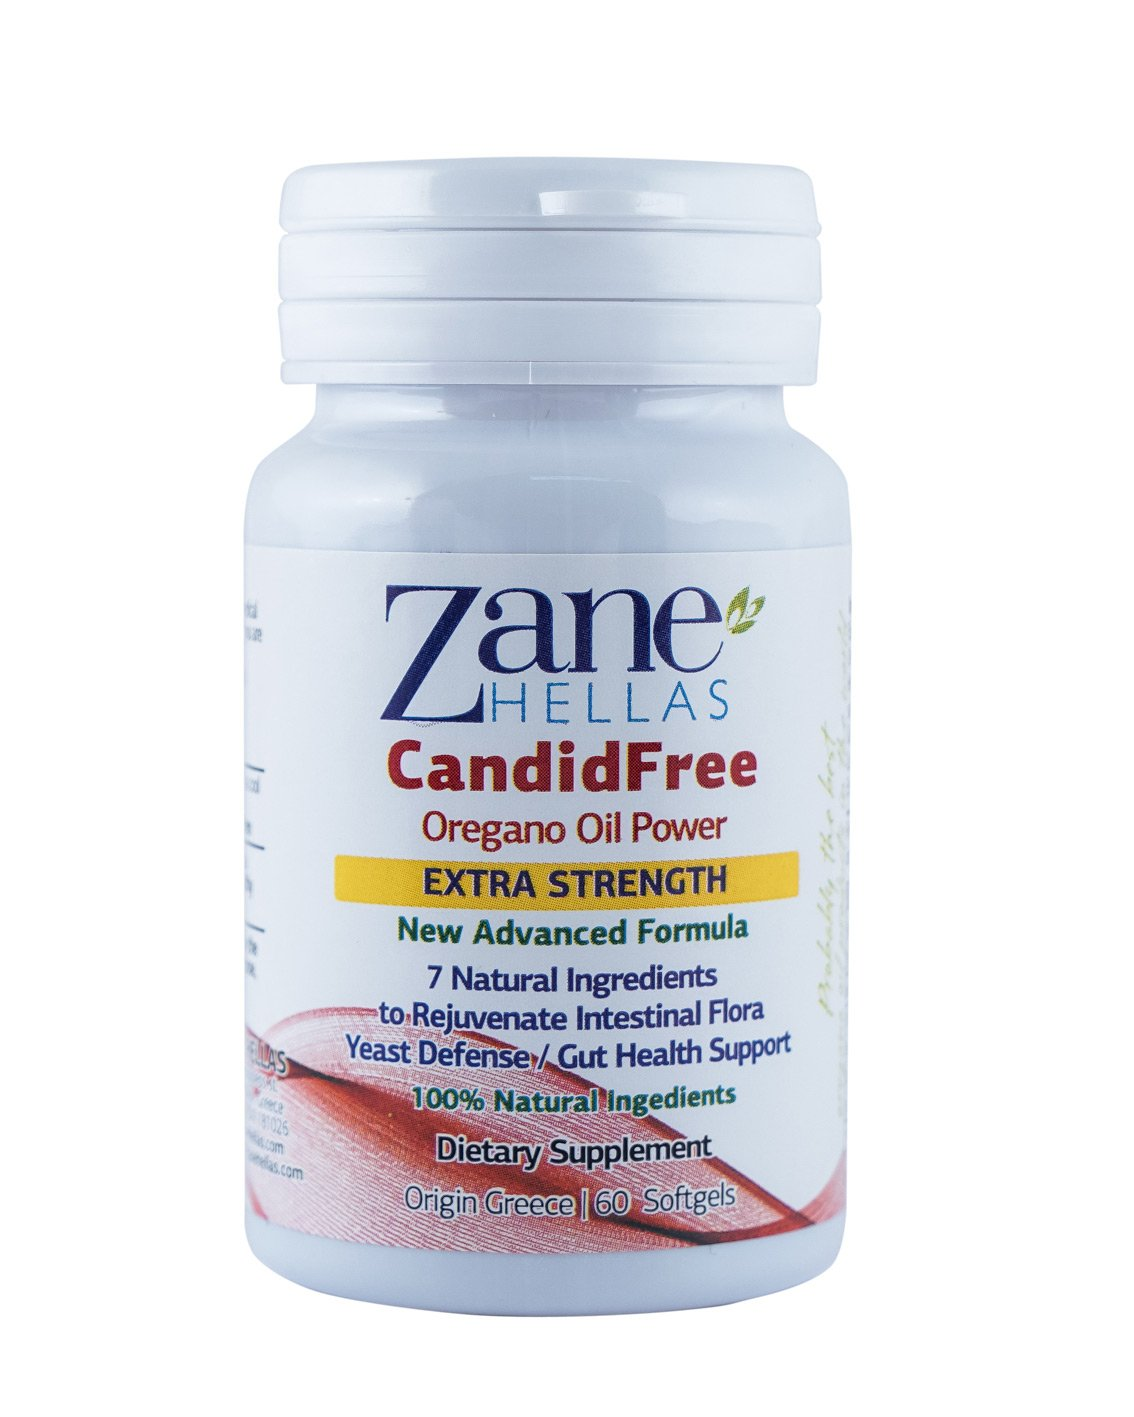 Zane Hellas CandidFree Softgels. 100% Natural Formula. Yeast Defense Gut Health Support. Helps Intestinal Flora. 60 Softgels with 7 Natural Ingredients. by Zane HELLAS Probably the best oregano oil products in the world